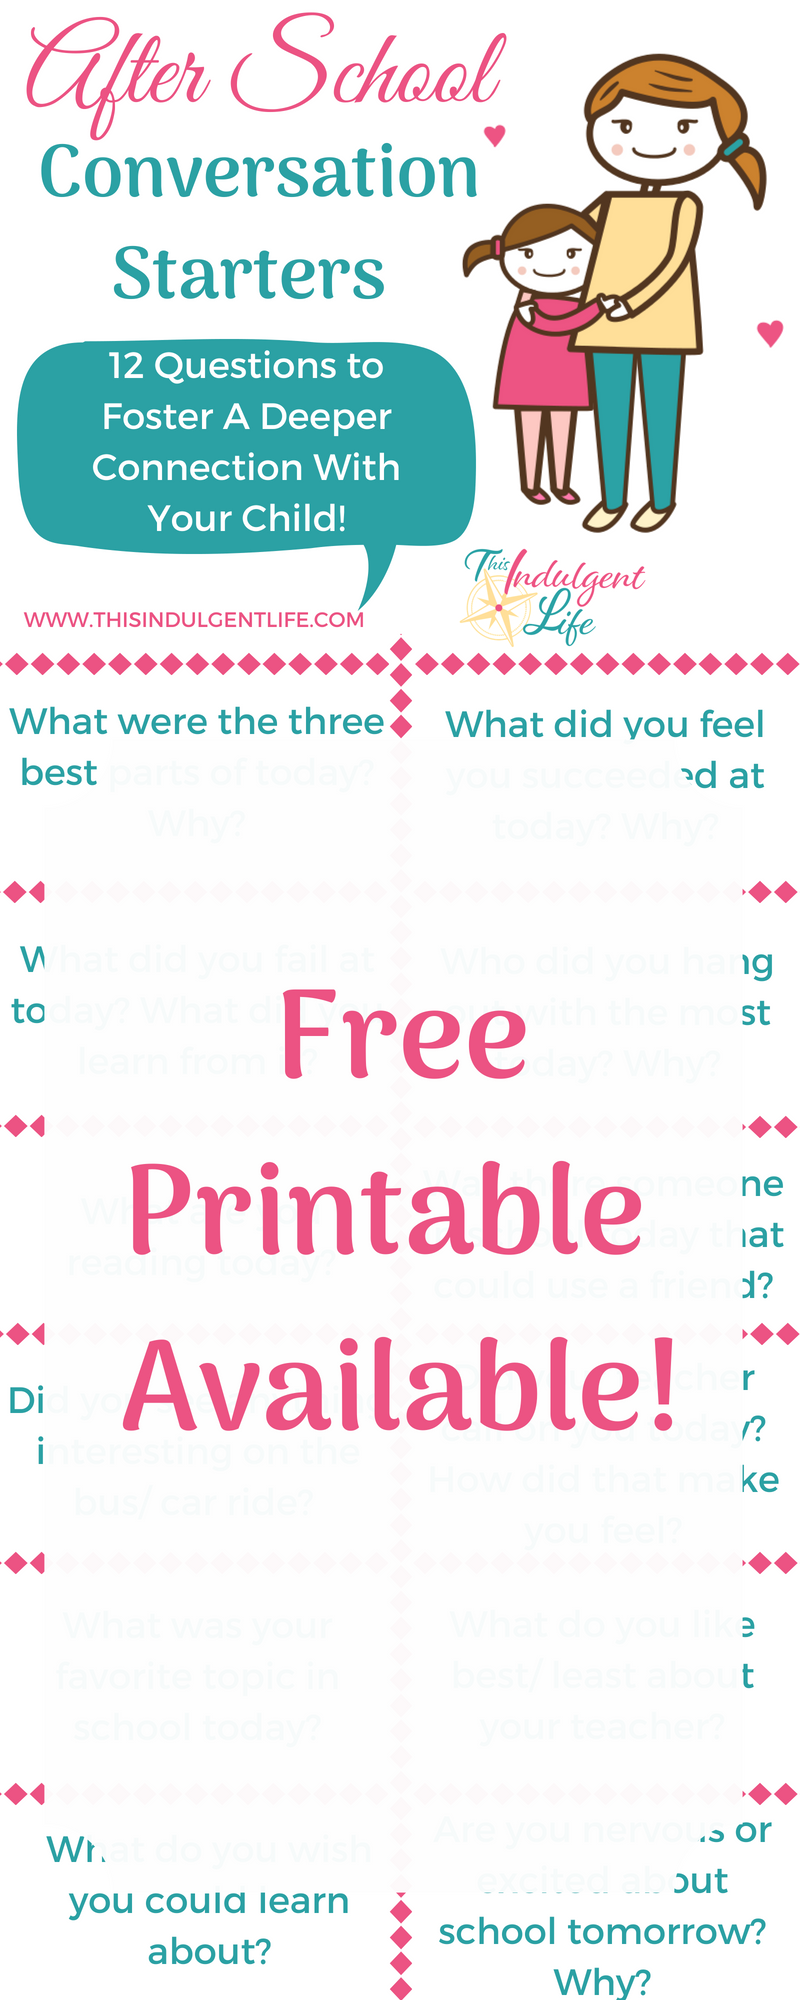 After School Conversation Starters Free Printable | This Indulgent Life | Use these 12 questions to start conversations with your child and develop a deeper bond with just 15 minutes of conversation after school! | #afterschool #backtoschool #conversationstarters #freeprintable #momadvice #parentingadvice #gentleparenting #respectfulparenting #howtobondwithmychild